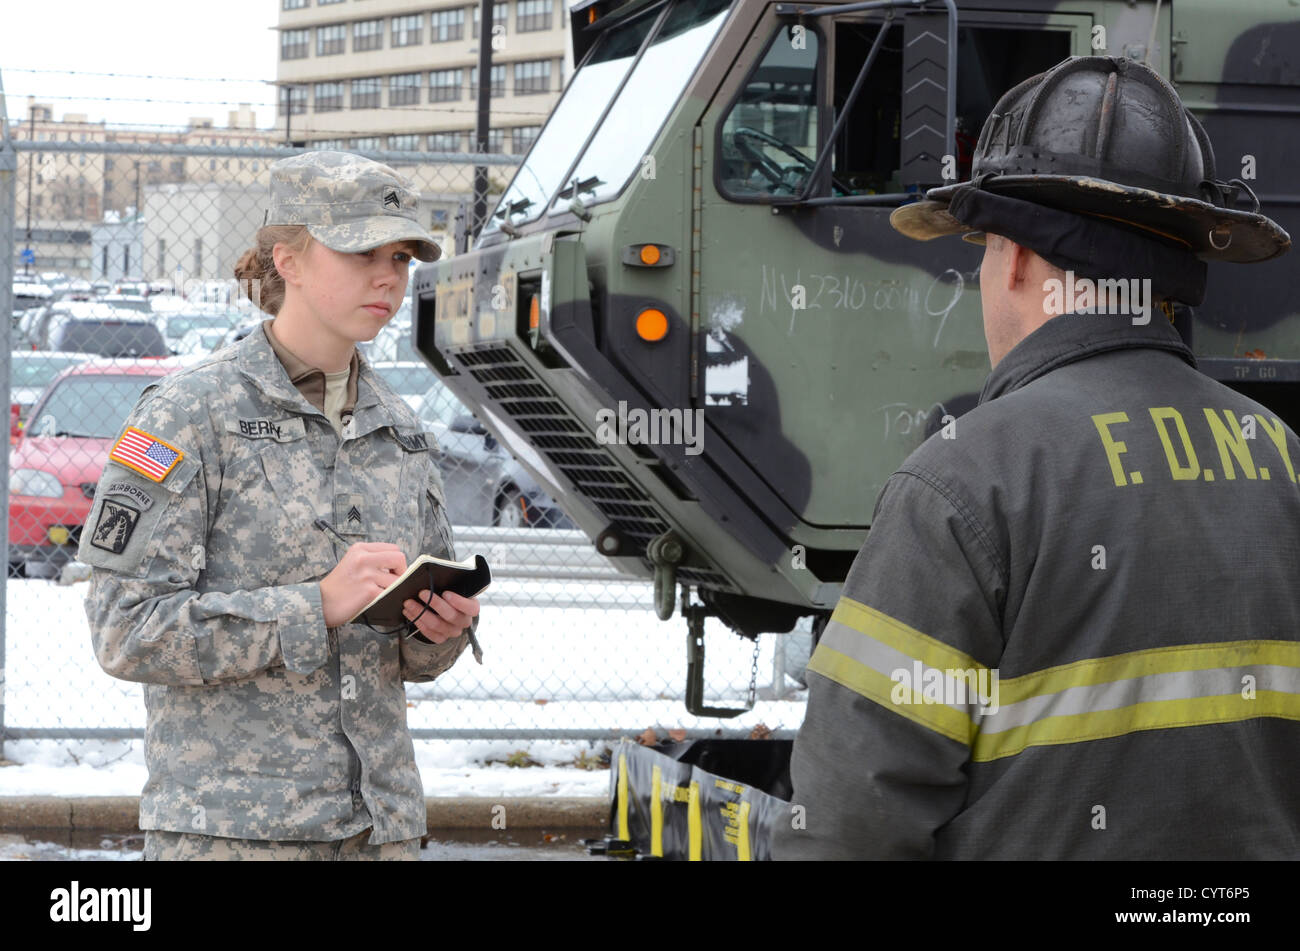 U.S. Army Sgt. Meghan Berry interviews a firefighter of the New York City Fire Department (F.D.N.Y.) on Fort Hamilton, - Stock Image